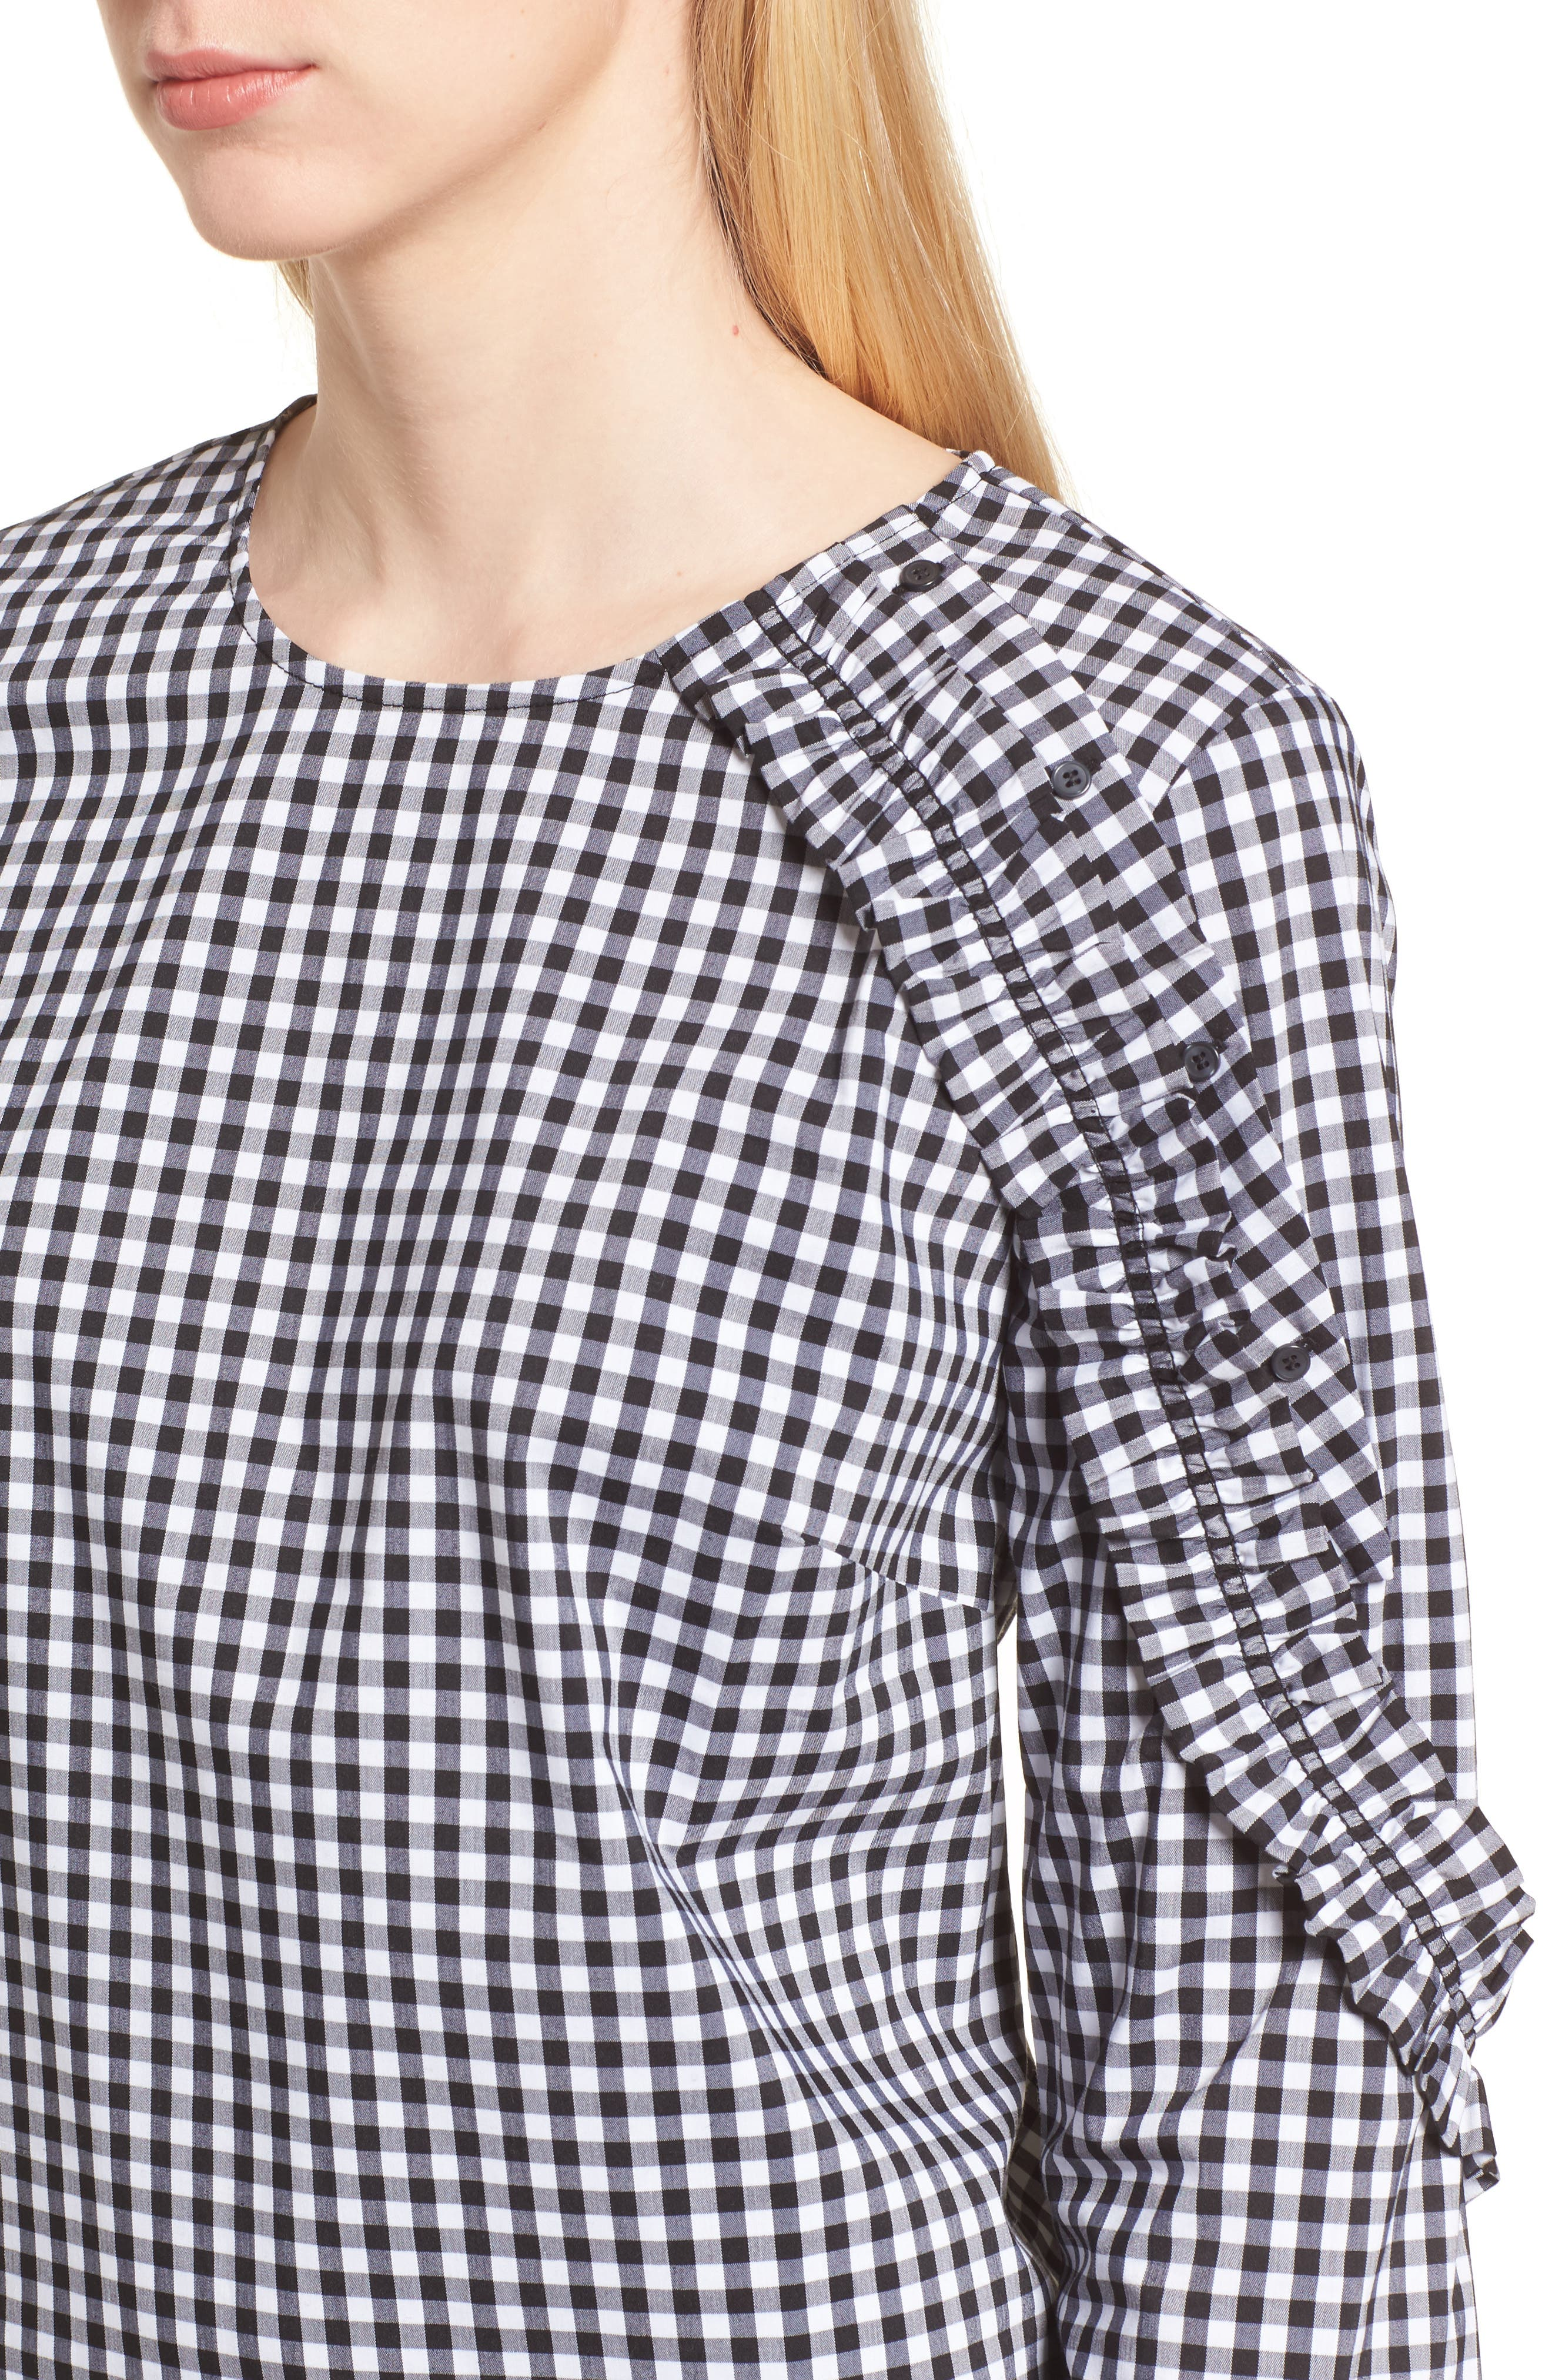 Ruffle Detail Poplin Shirt,                             Alternate thumbnail 4, color,                             001